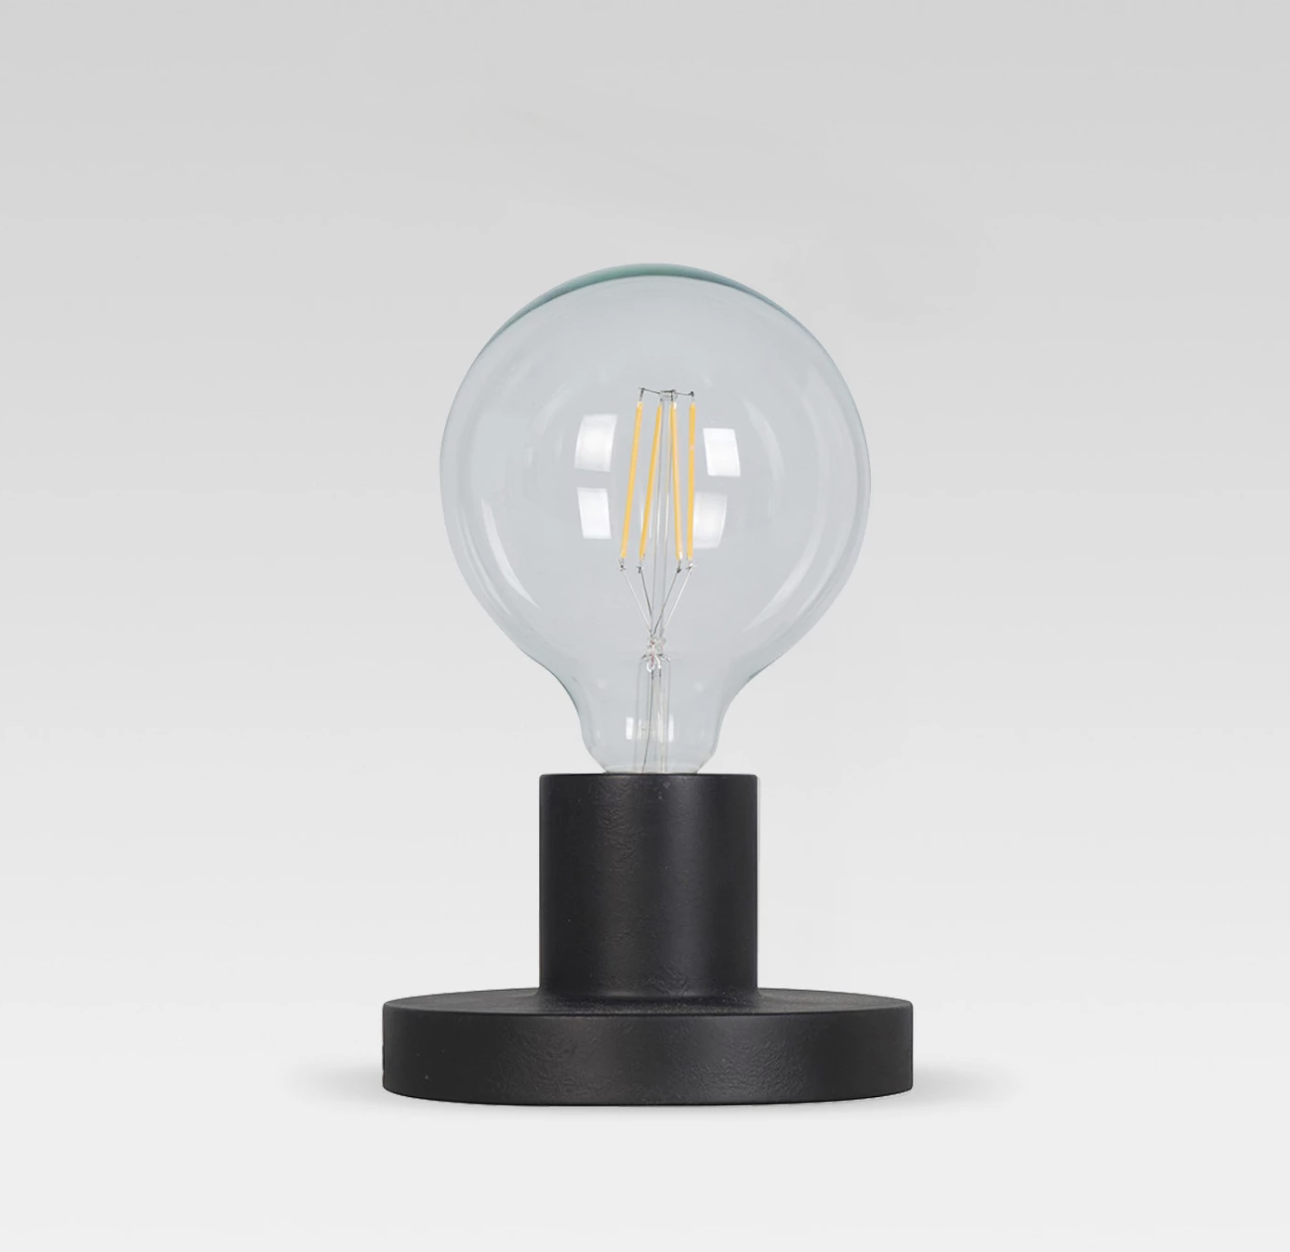 Target Lighting Fixtures: The Best Light Fixtures From Leanne Ford's New Target